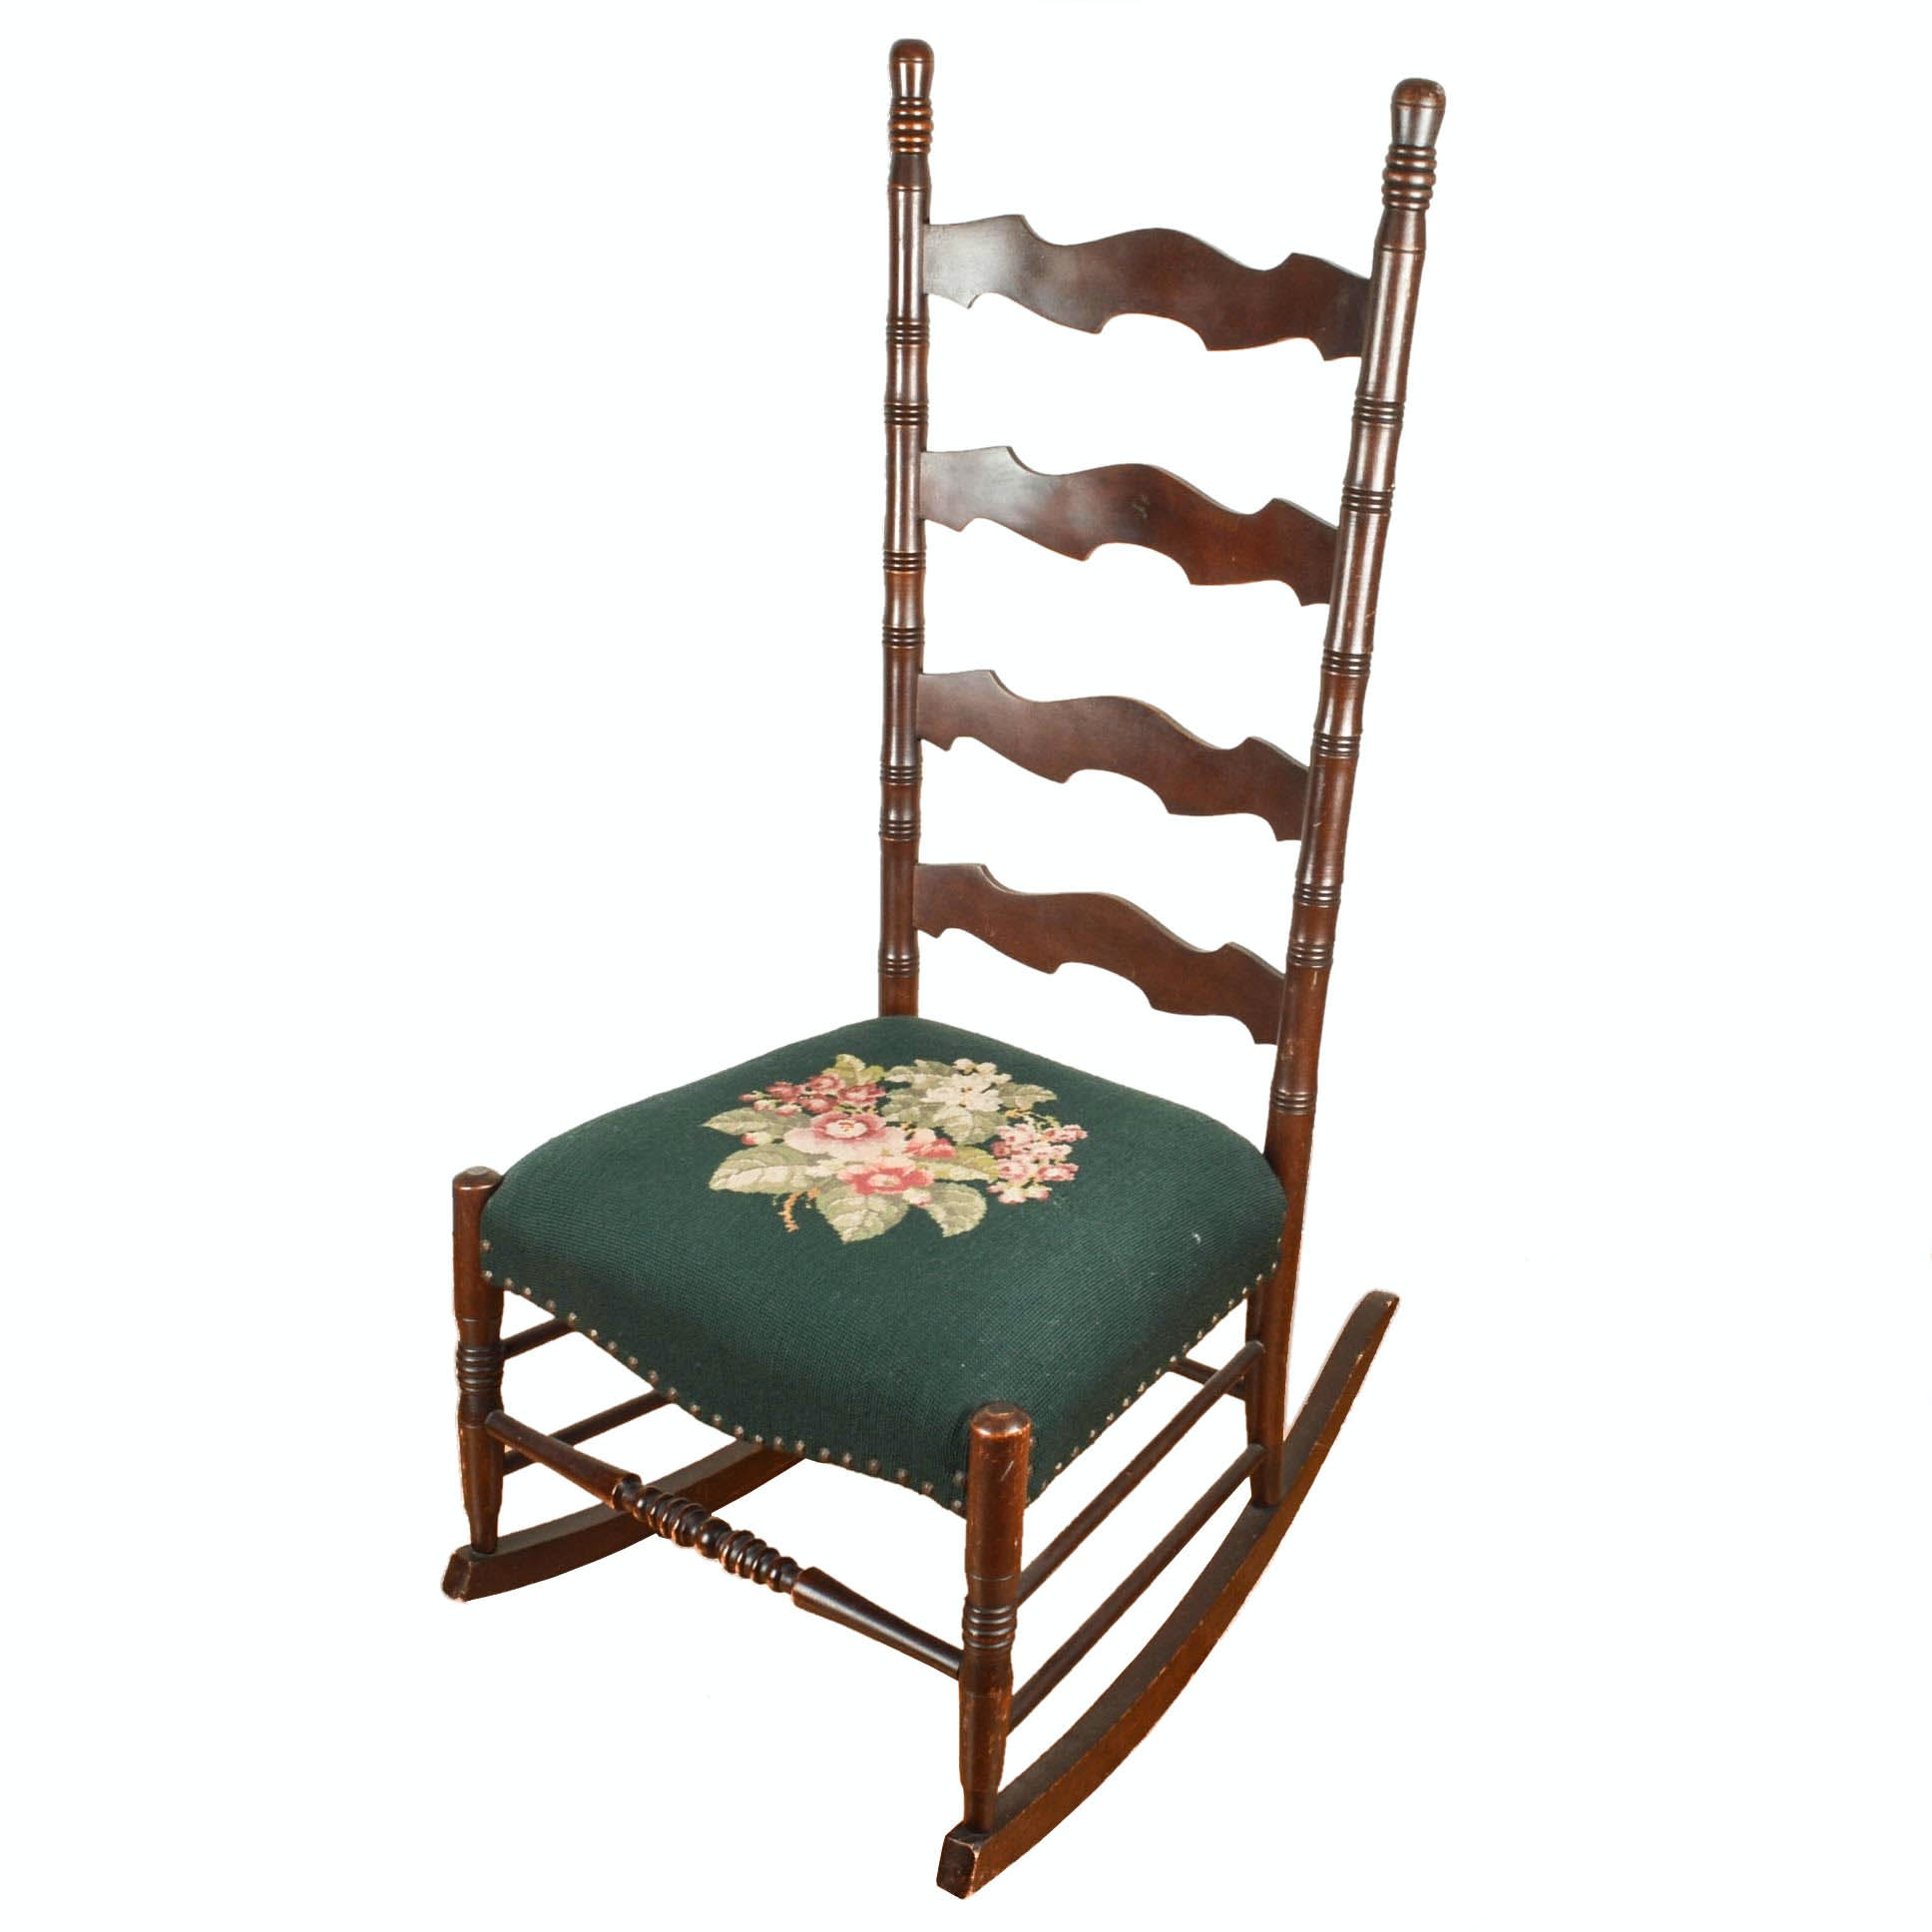 Ladder-Back Rocking Chair With Needlepoint Seat